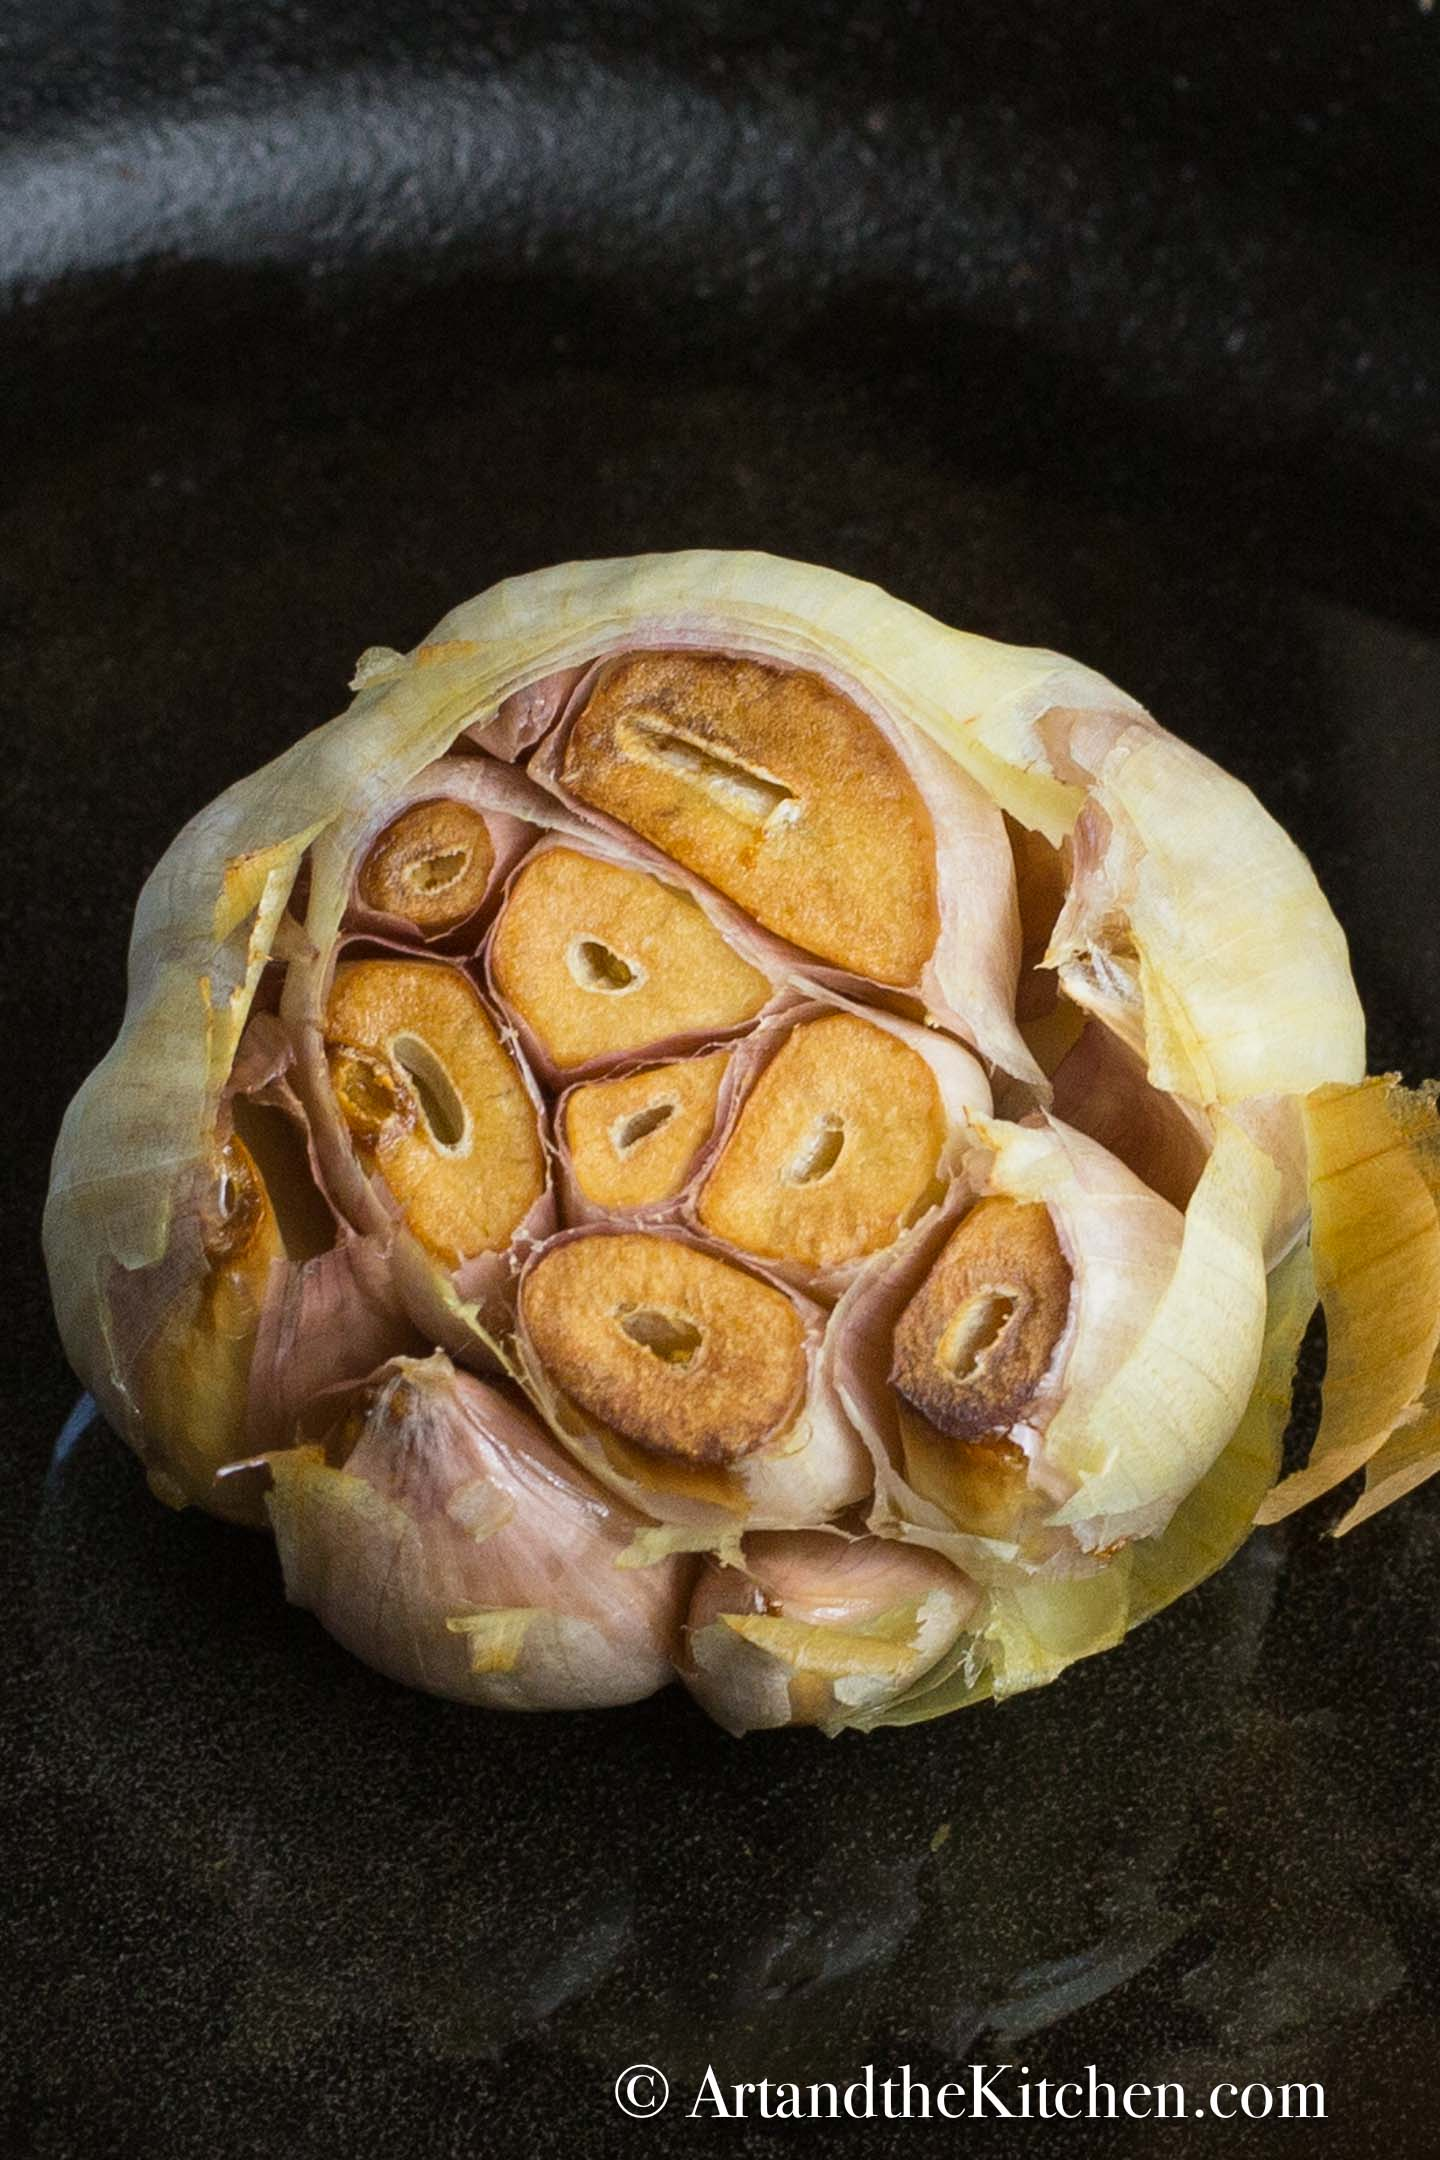 Head of garlic with the top sliced off roasted in a cast iron pan.